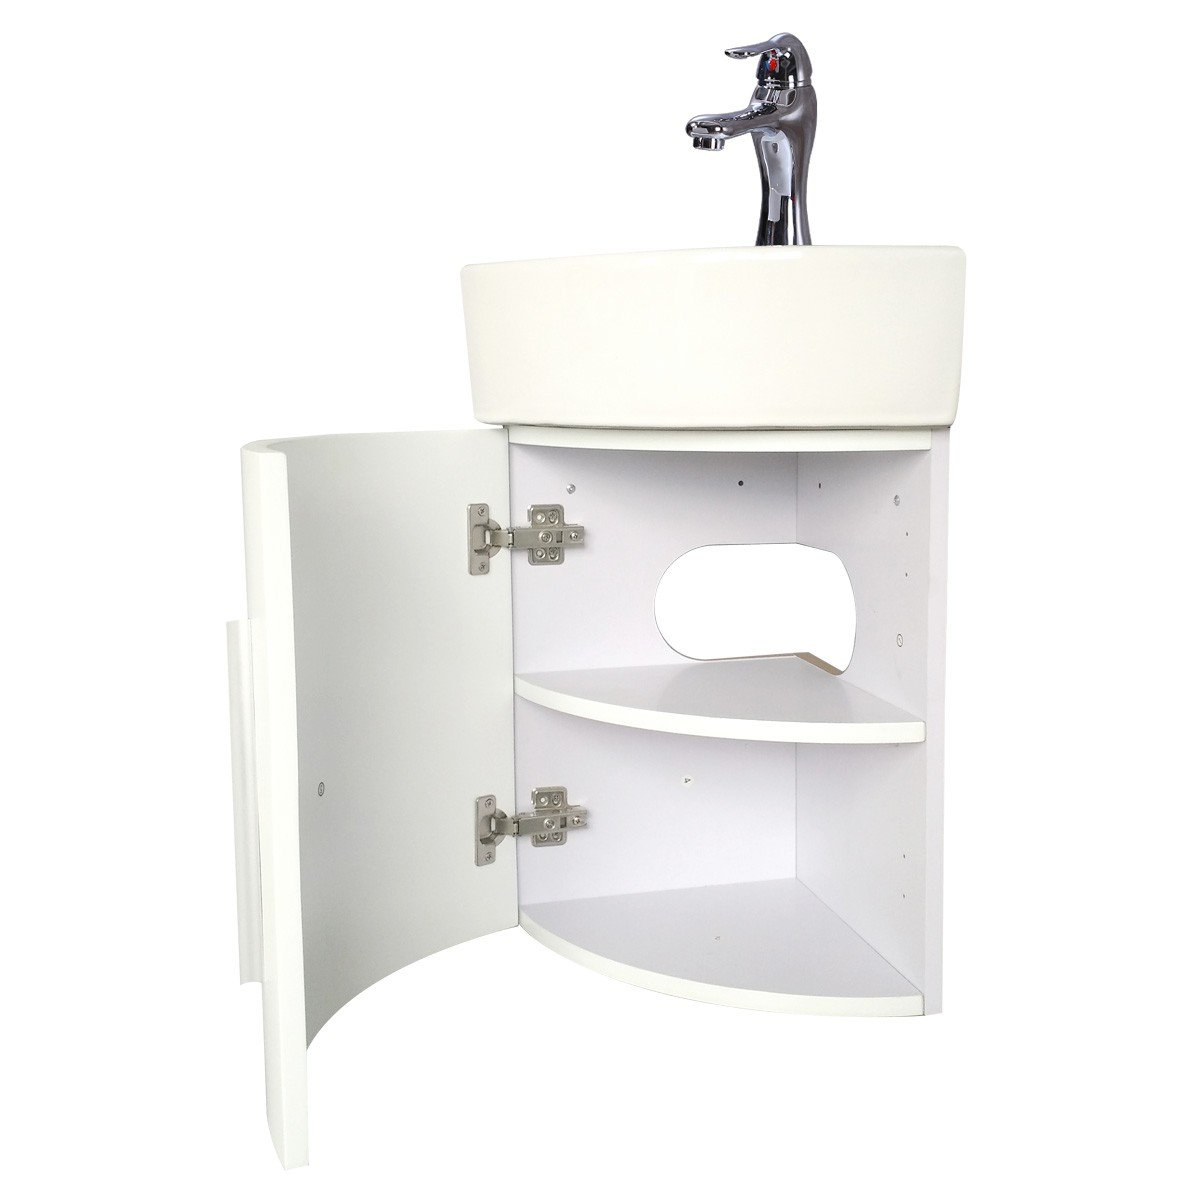 White Wall Mount Corner Cabinet Sink Faucet And Drain Combo Set Included Space Saving Design Renovators Supply